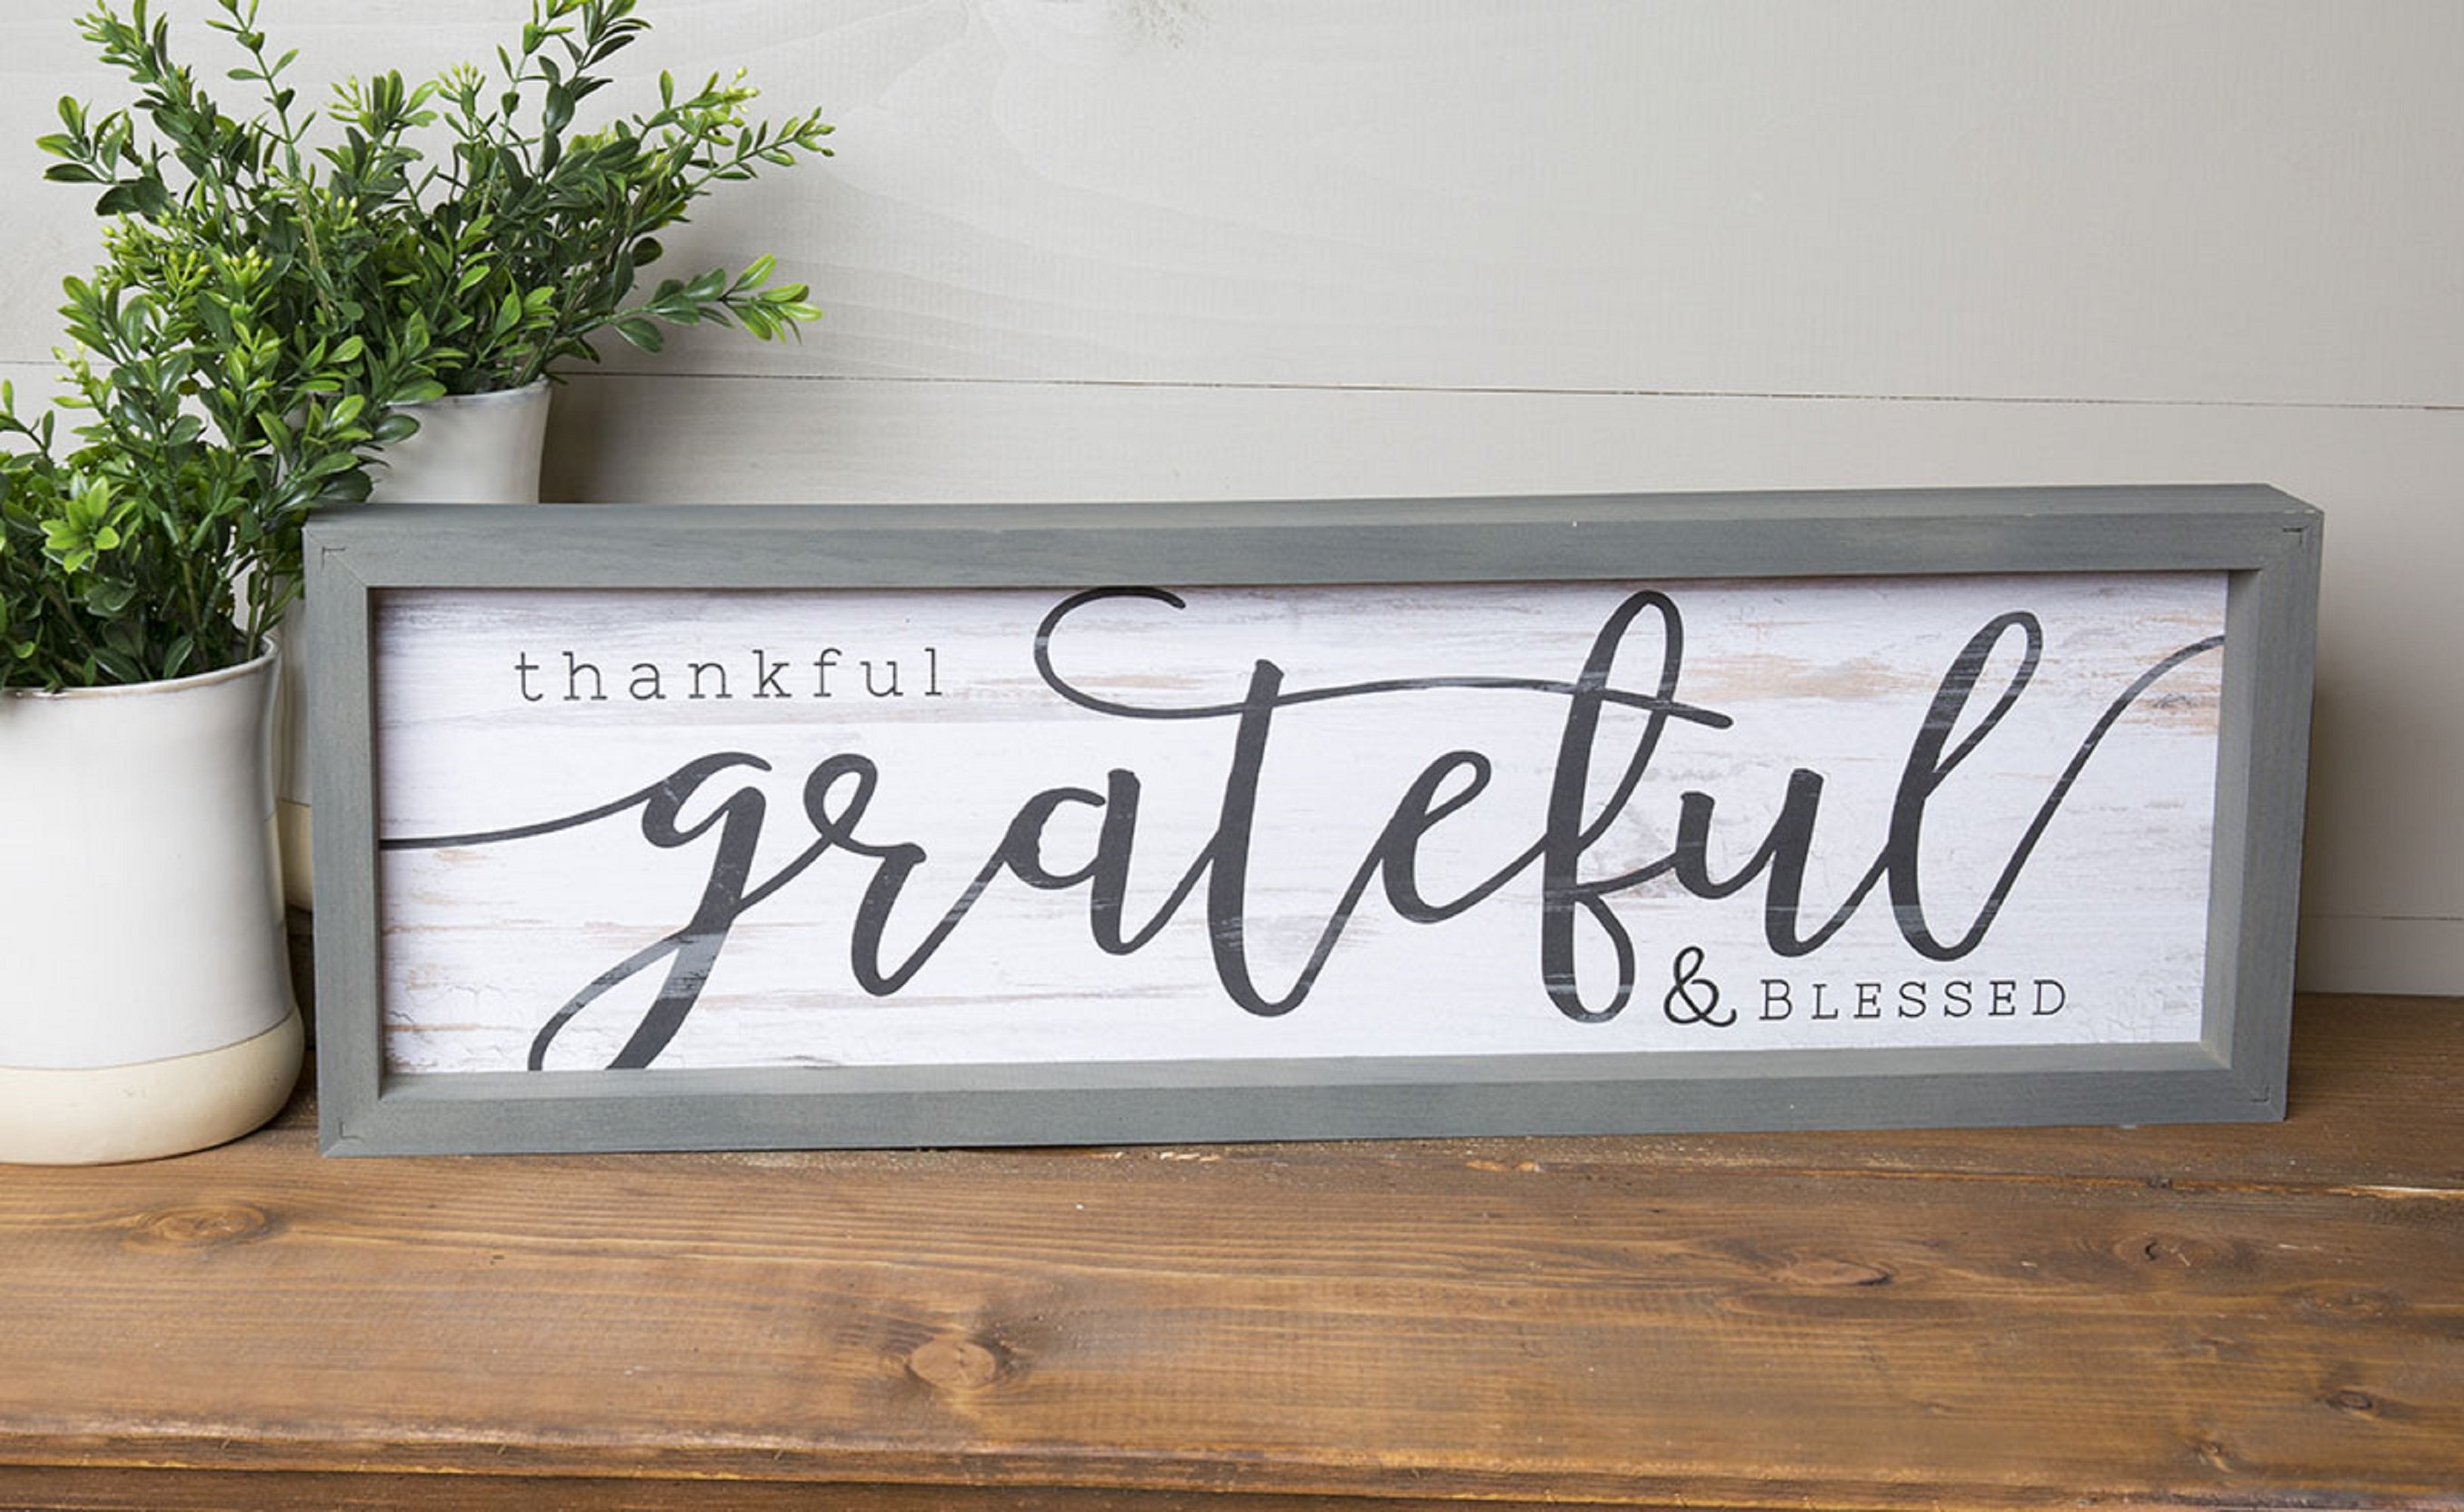 Blessed Wall Decor   Wayfair With Regard To Blessed Steel Wall Decor (View 6 of 30)